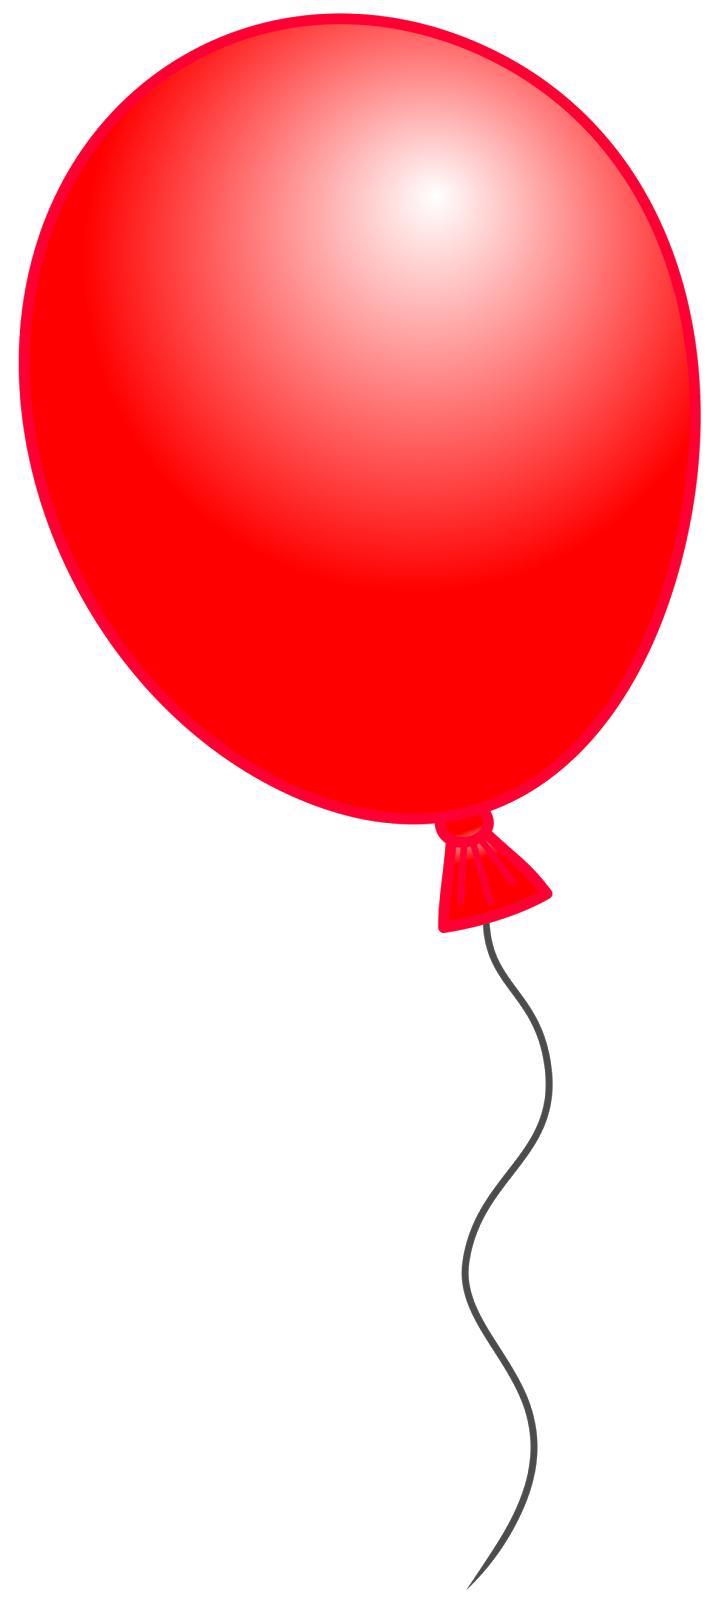 Balloon Clipart. You Can Use Each Balloon On Its Own Or Create A Group As Below